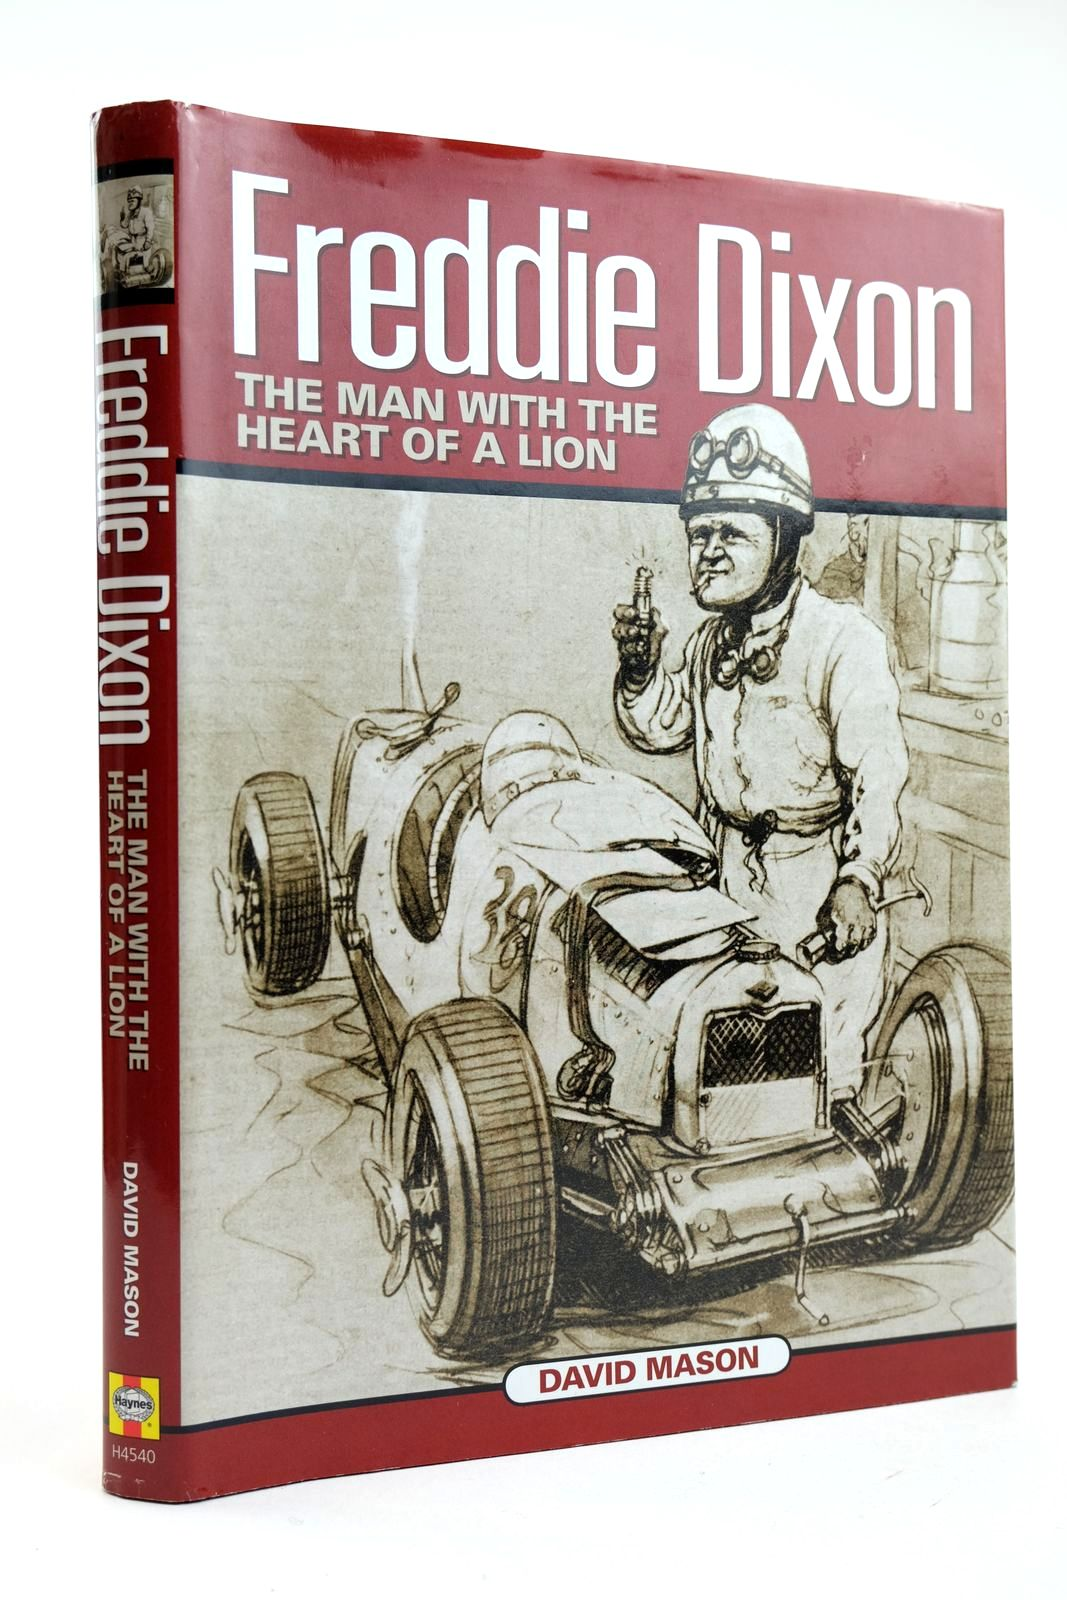 Photo of FREDDIE DIXON THE MAN WITH THE HEART OF A LION- Stock Number: 2132294